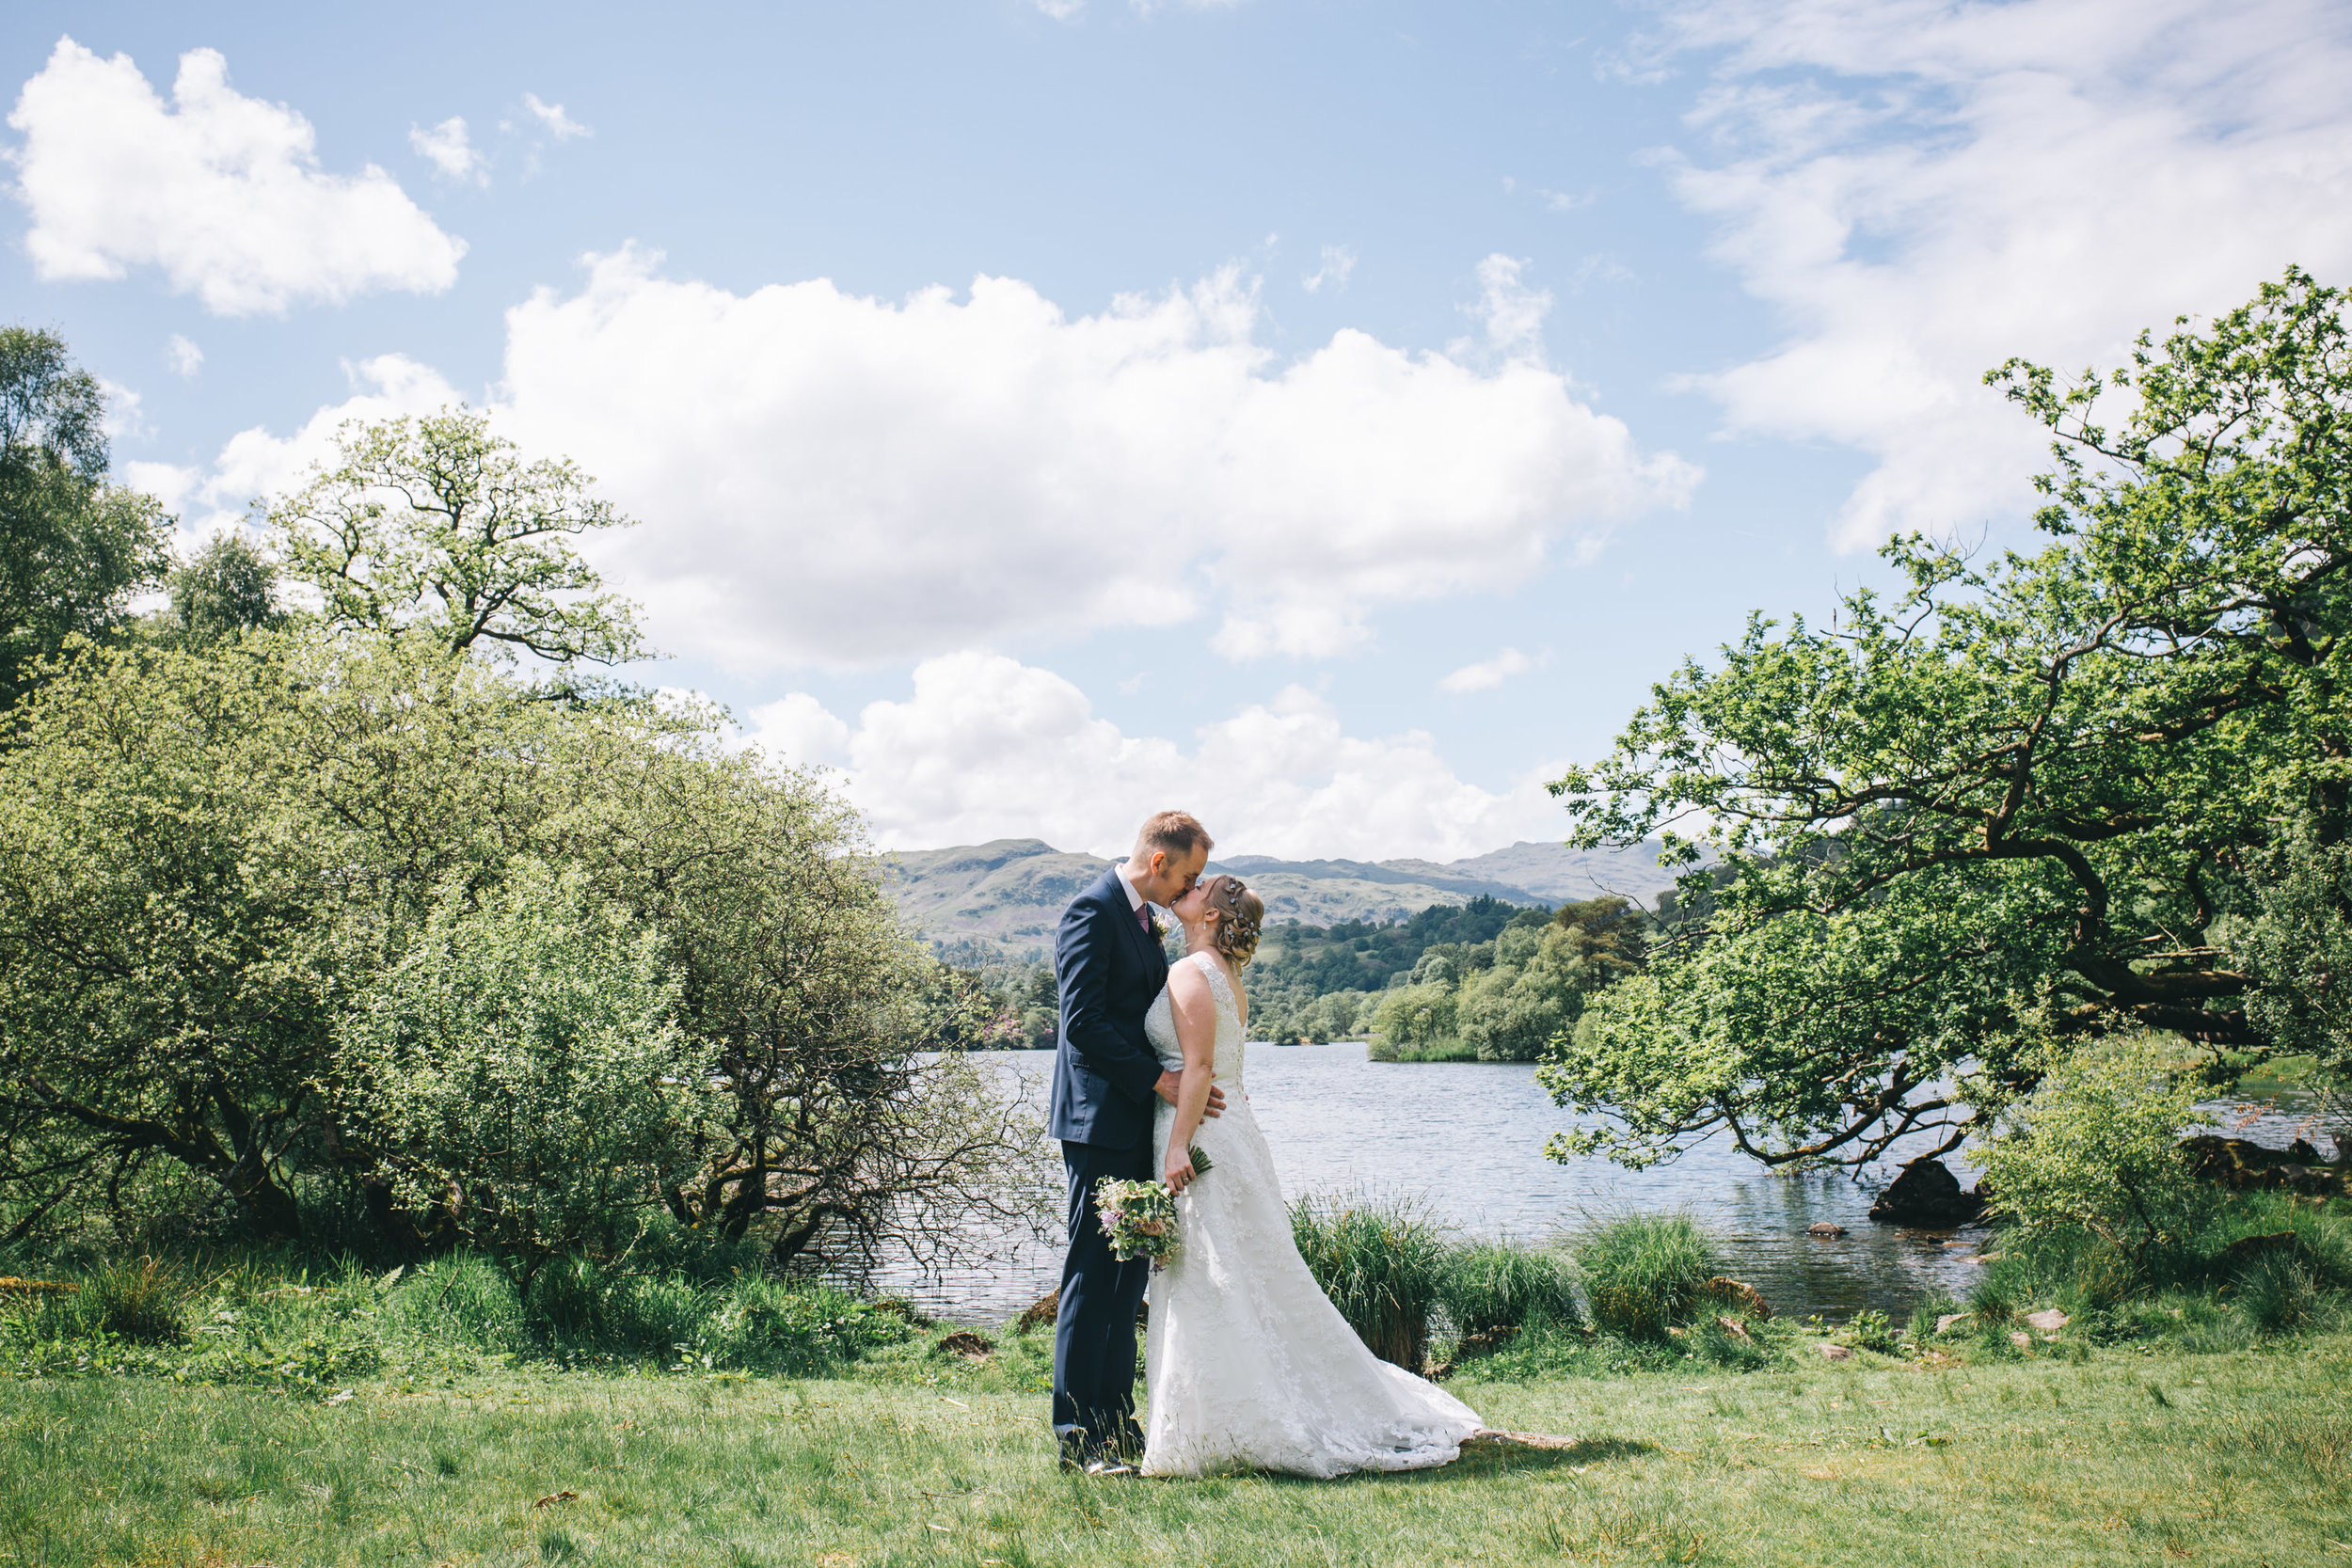 Cote How wedding venue - bride and groom by the lake